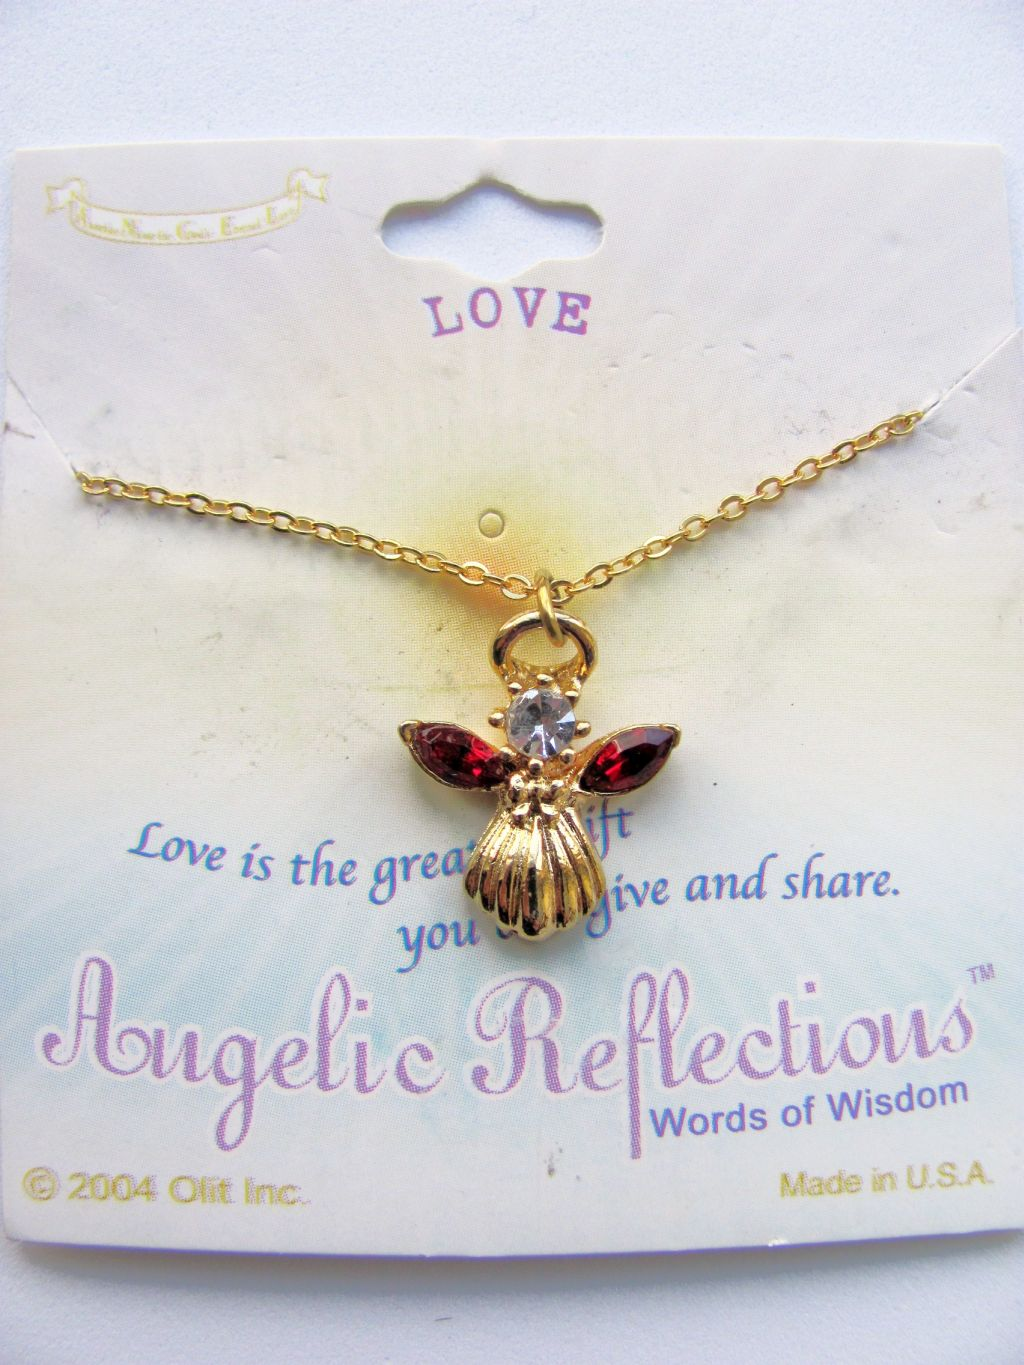 Love Inspirational Ruby-Red Angel Pendant Necklace Gold Tone